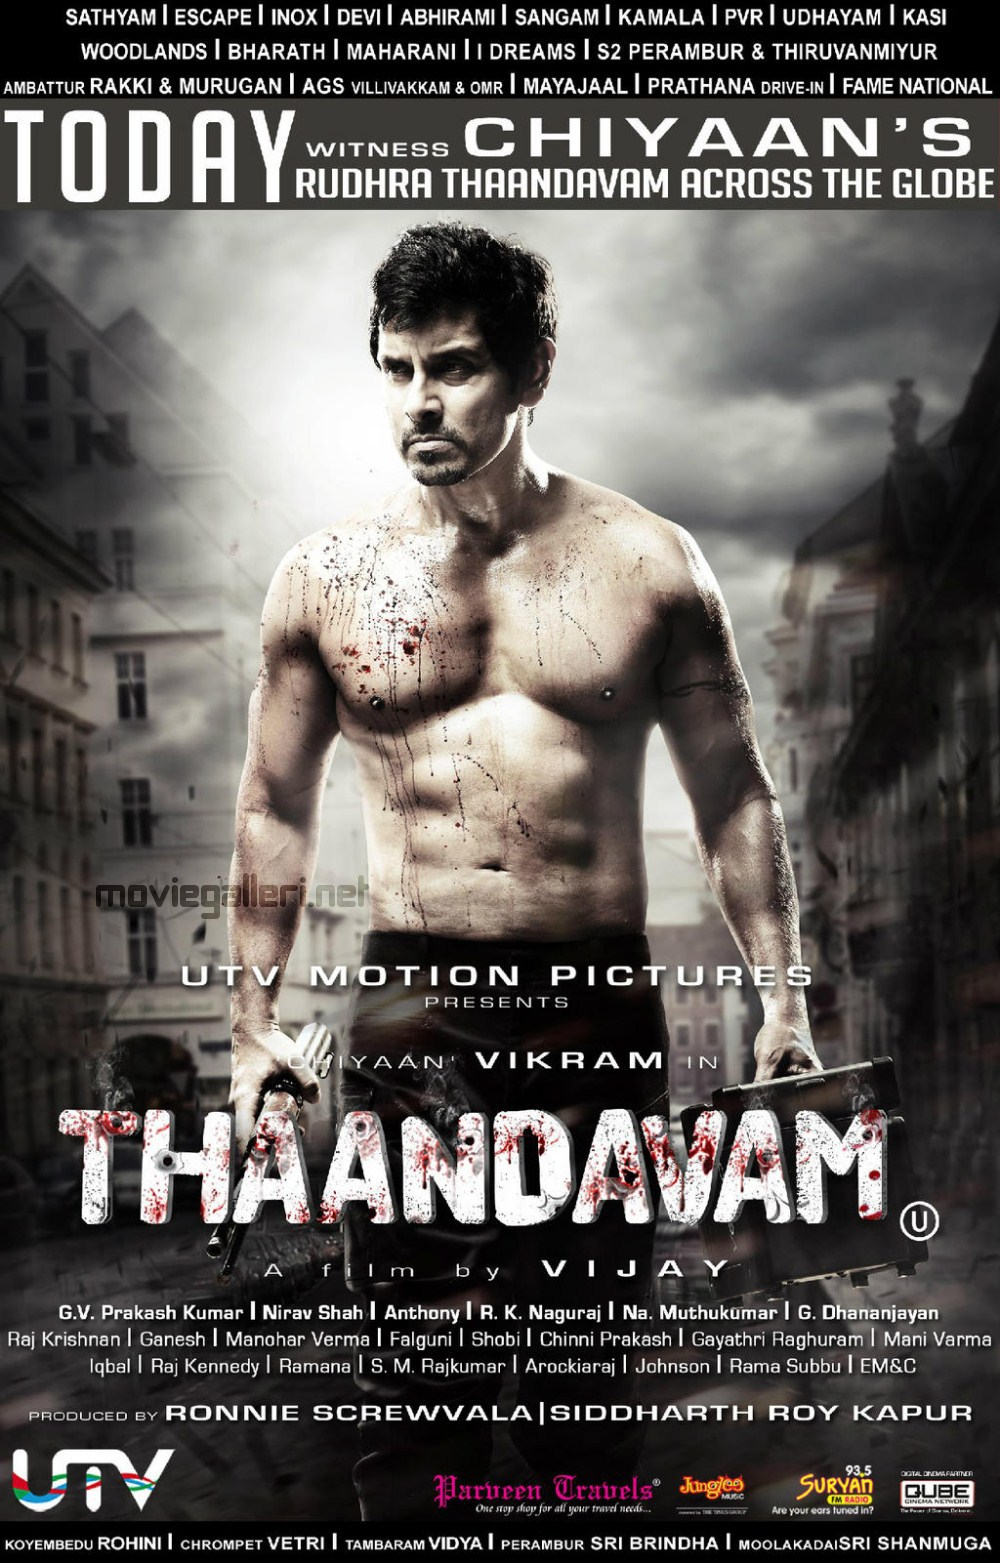 Chiyaan Vikram in Thandavam Movie Release Posters